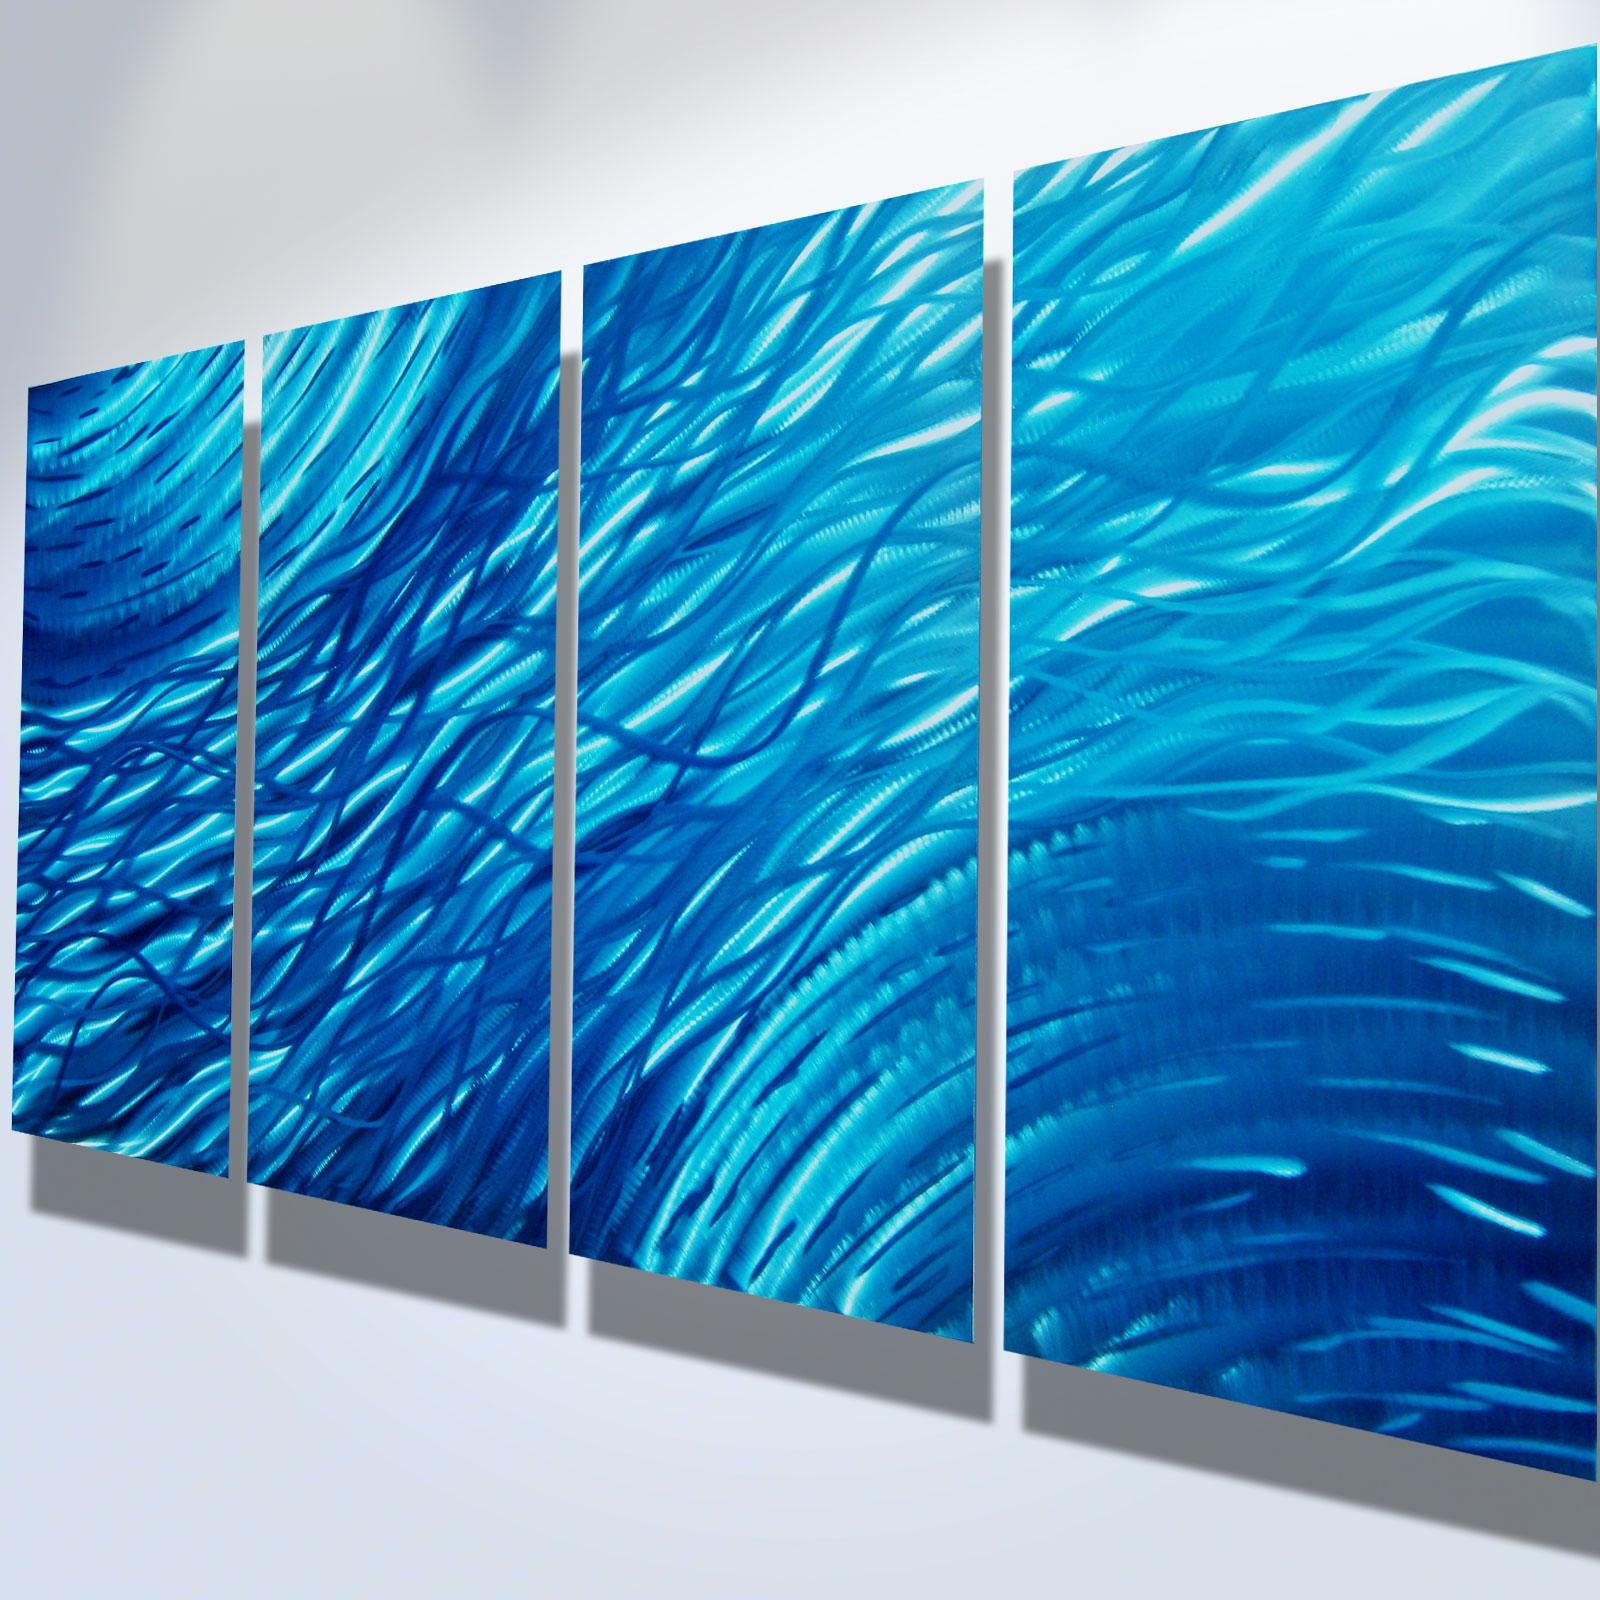 Ocean Metal Wall Art Abstract Contemporary Modern Decor Throughout Teal Metal Wall Art (View 19 of 20)